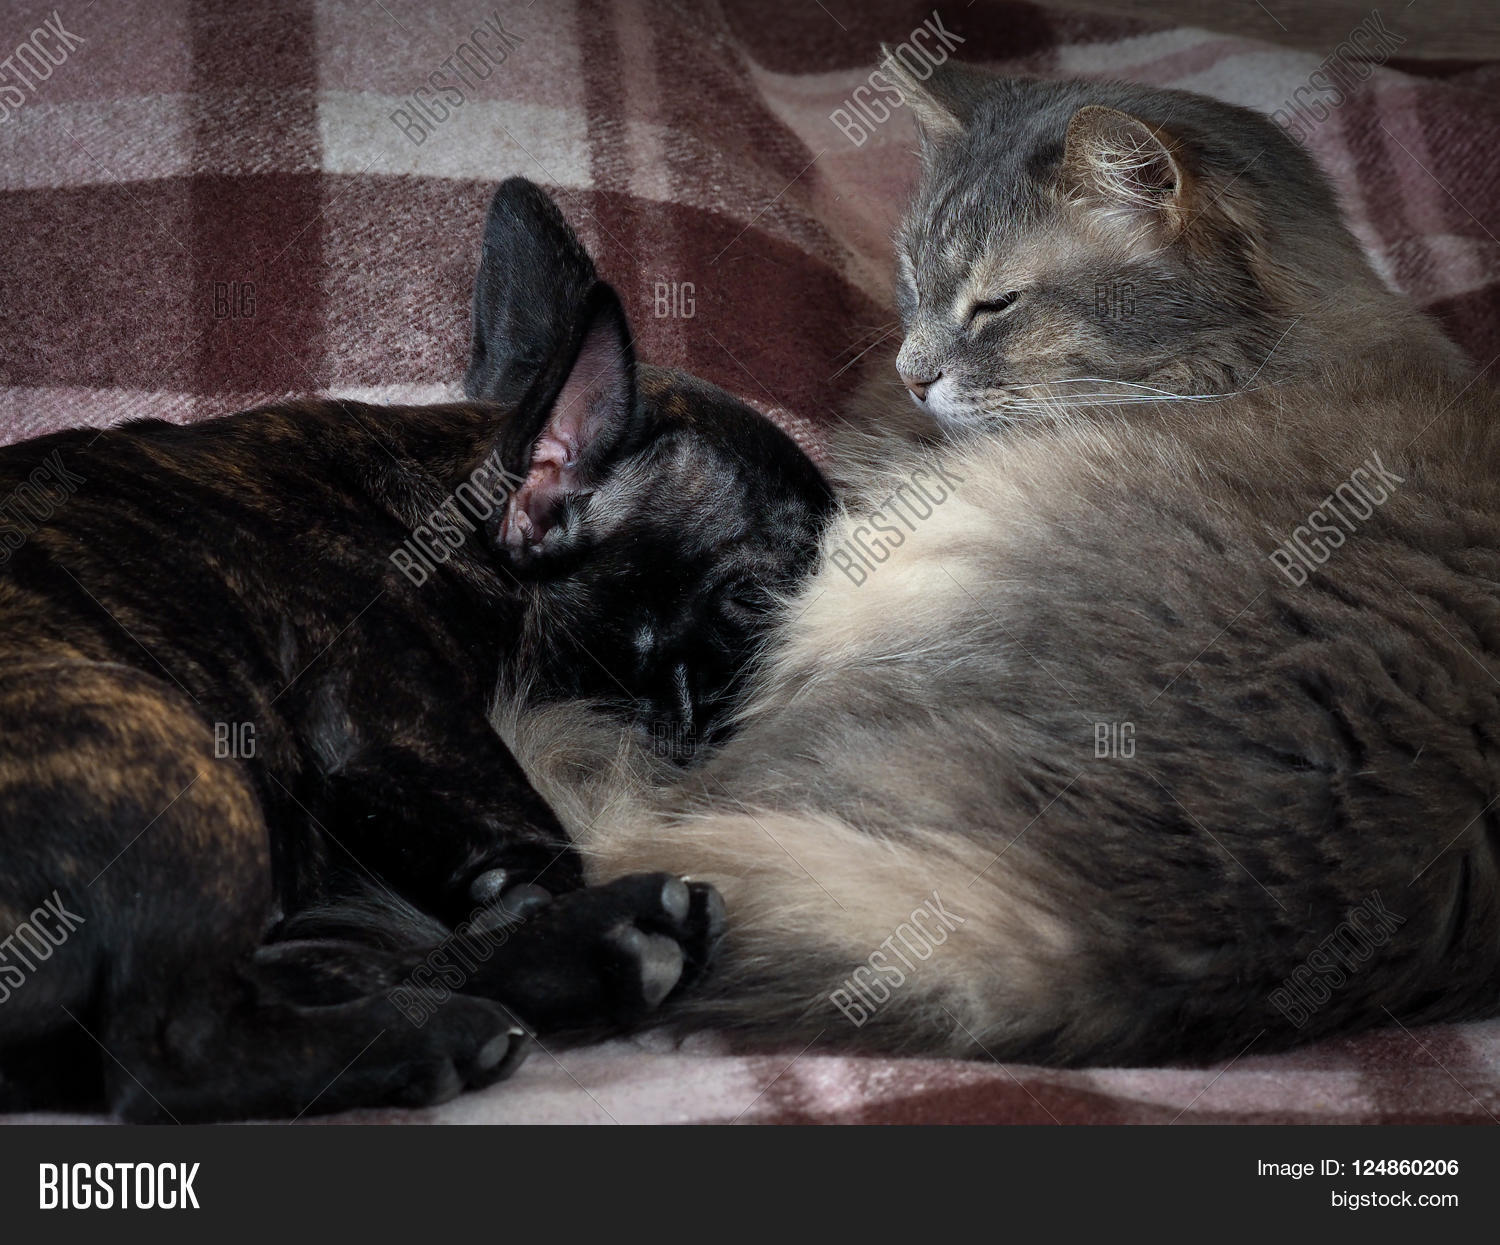 gray fluffy cat and a black dog sleeping together. friendship cats